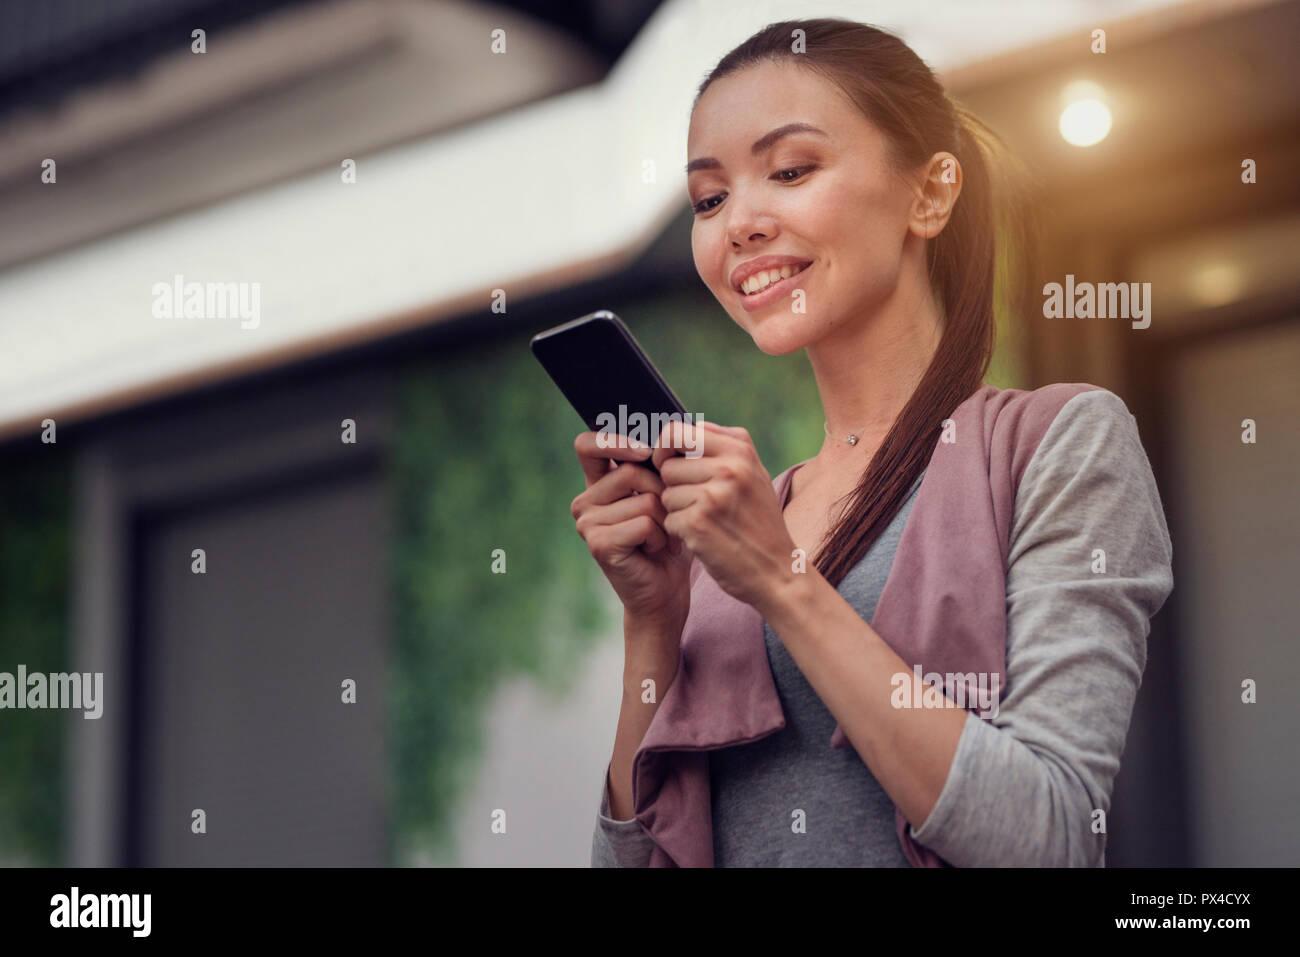 A young beautiful asian woman using an application in her smart phone to read email, send text message, chat, browse or shop online - Stock Image